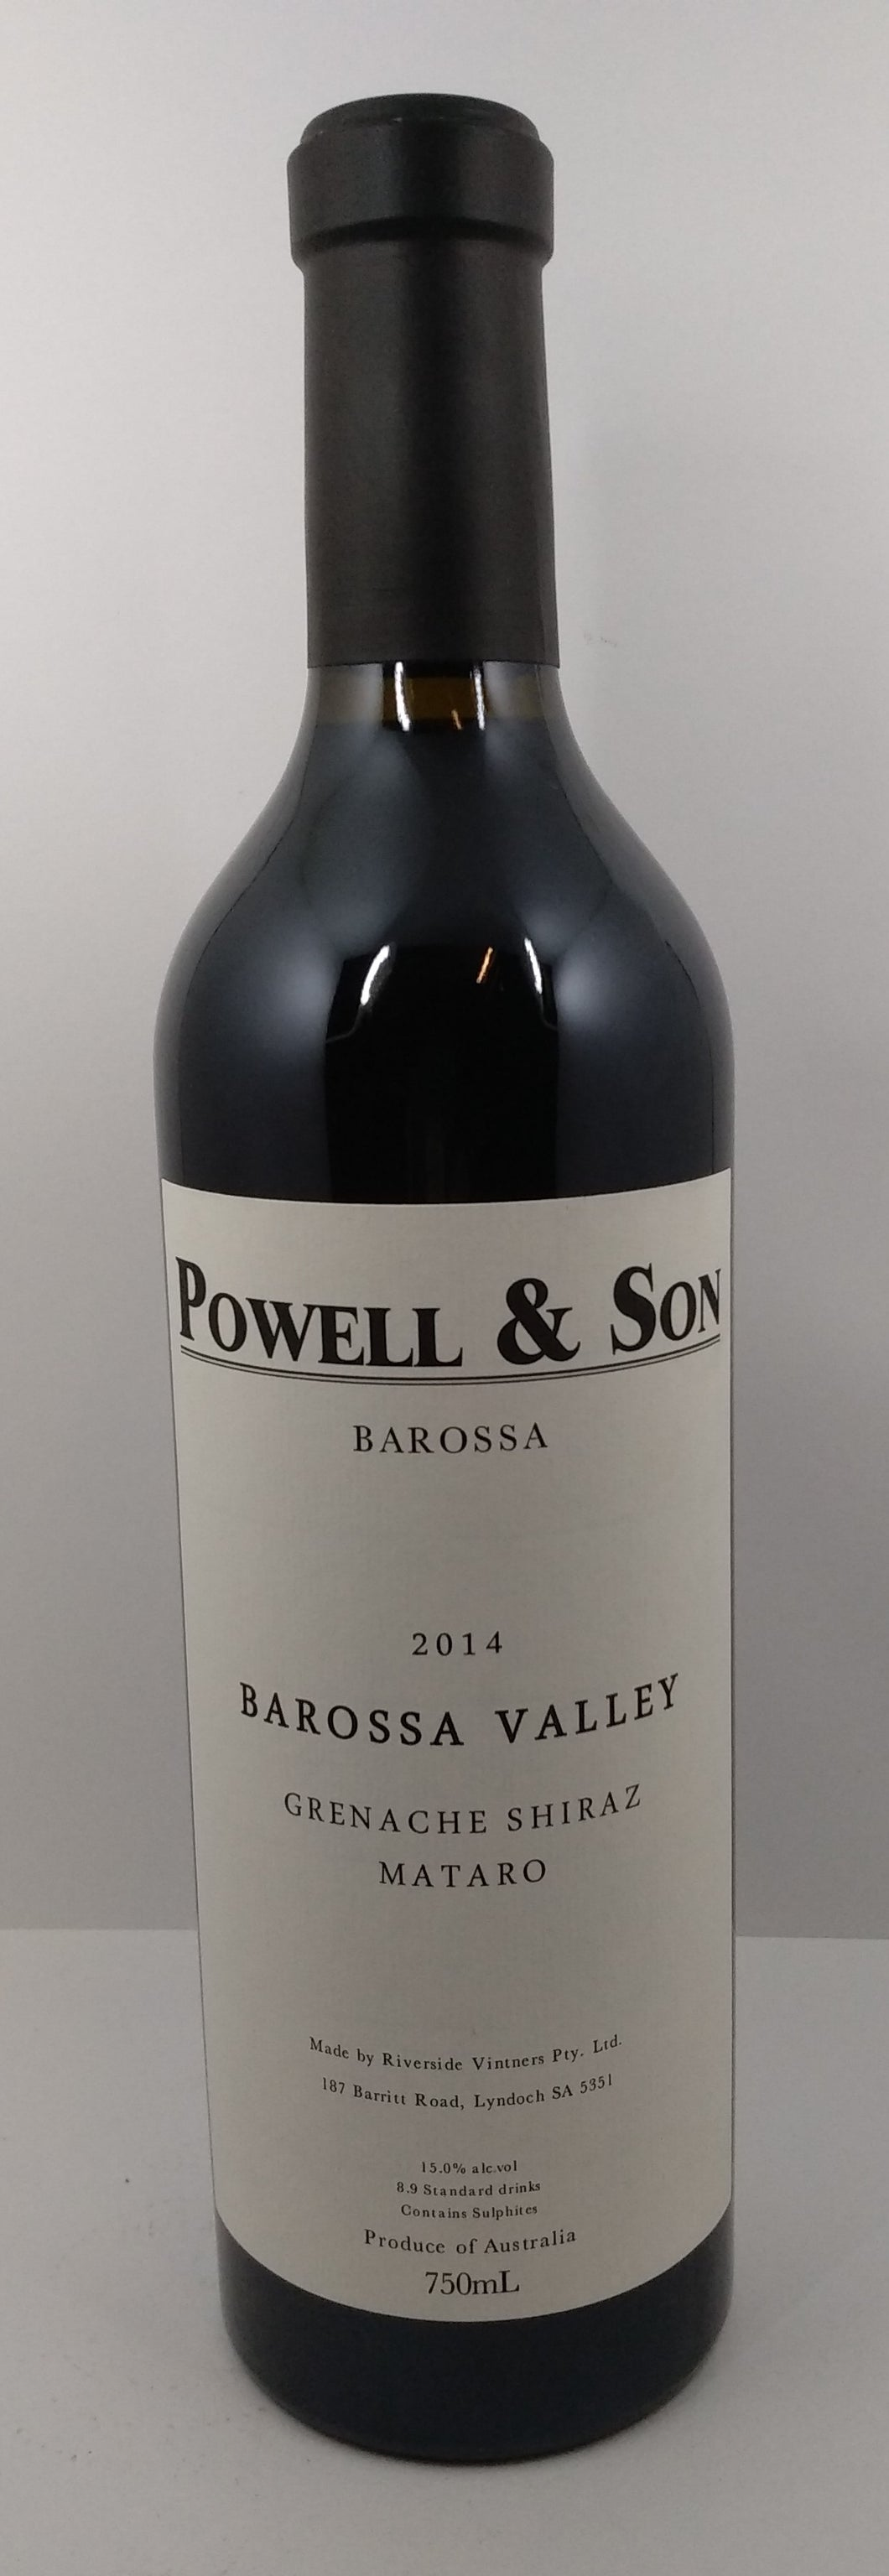 Powell & Son Barossa Valley Grenache Shiraz Mataro